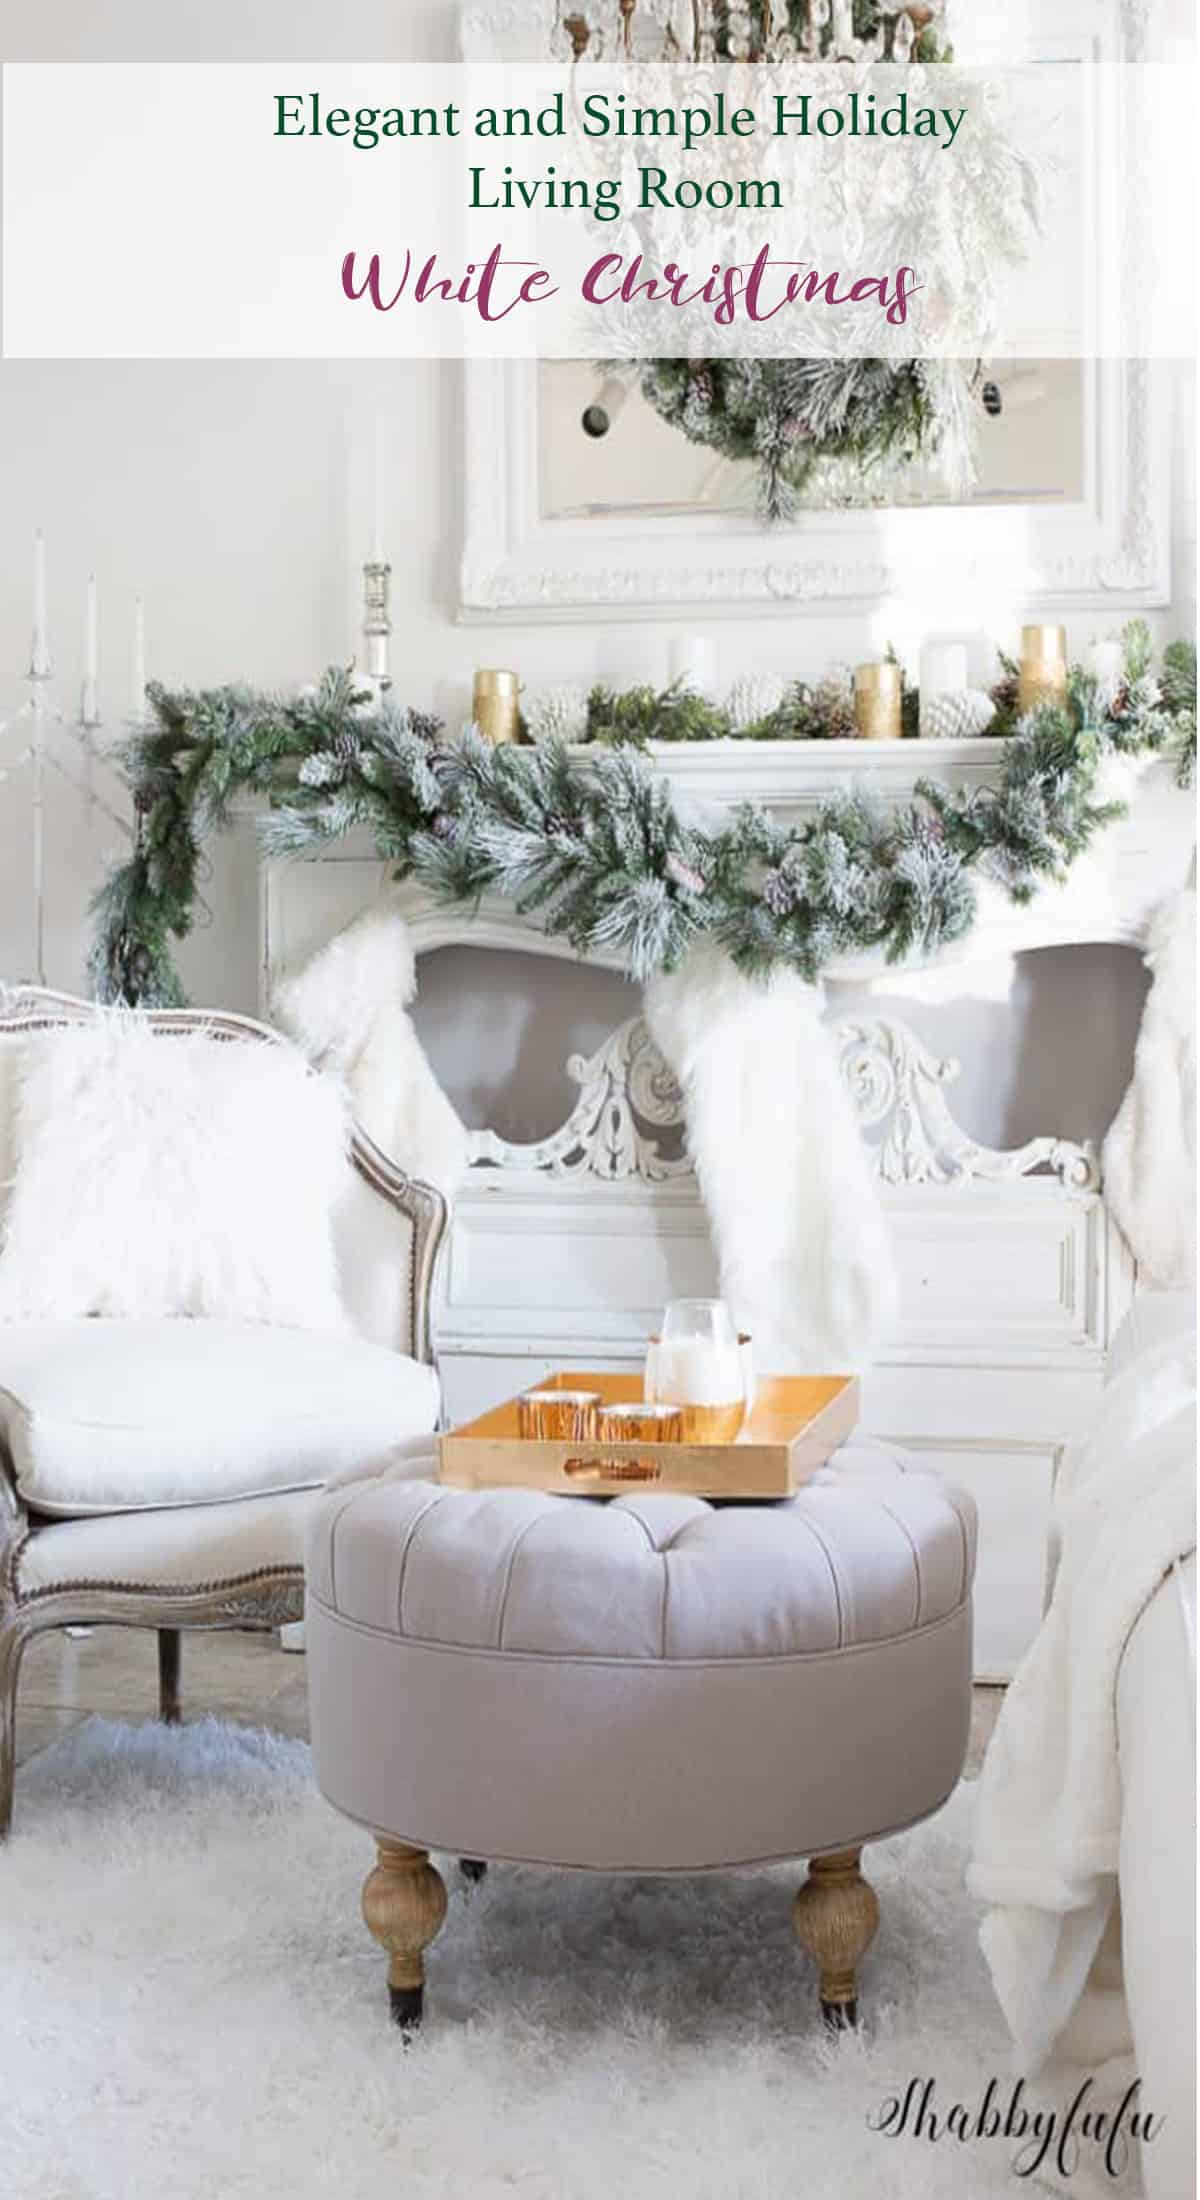 Elegant and Simple Christmas Living Room in White - shabbyfufu.com